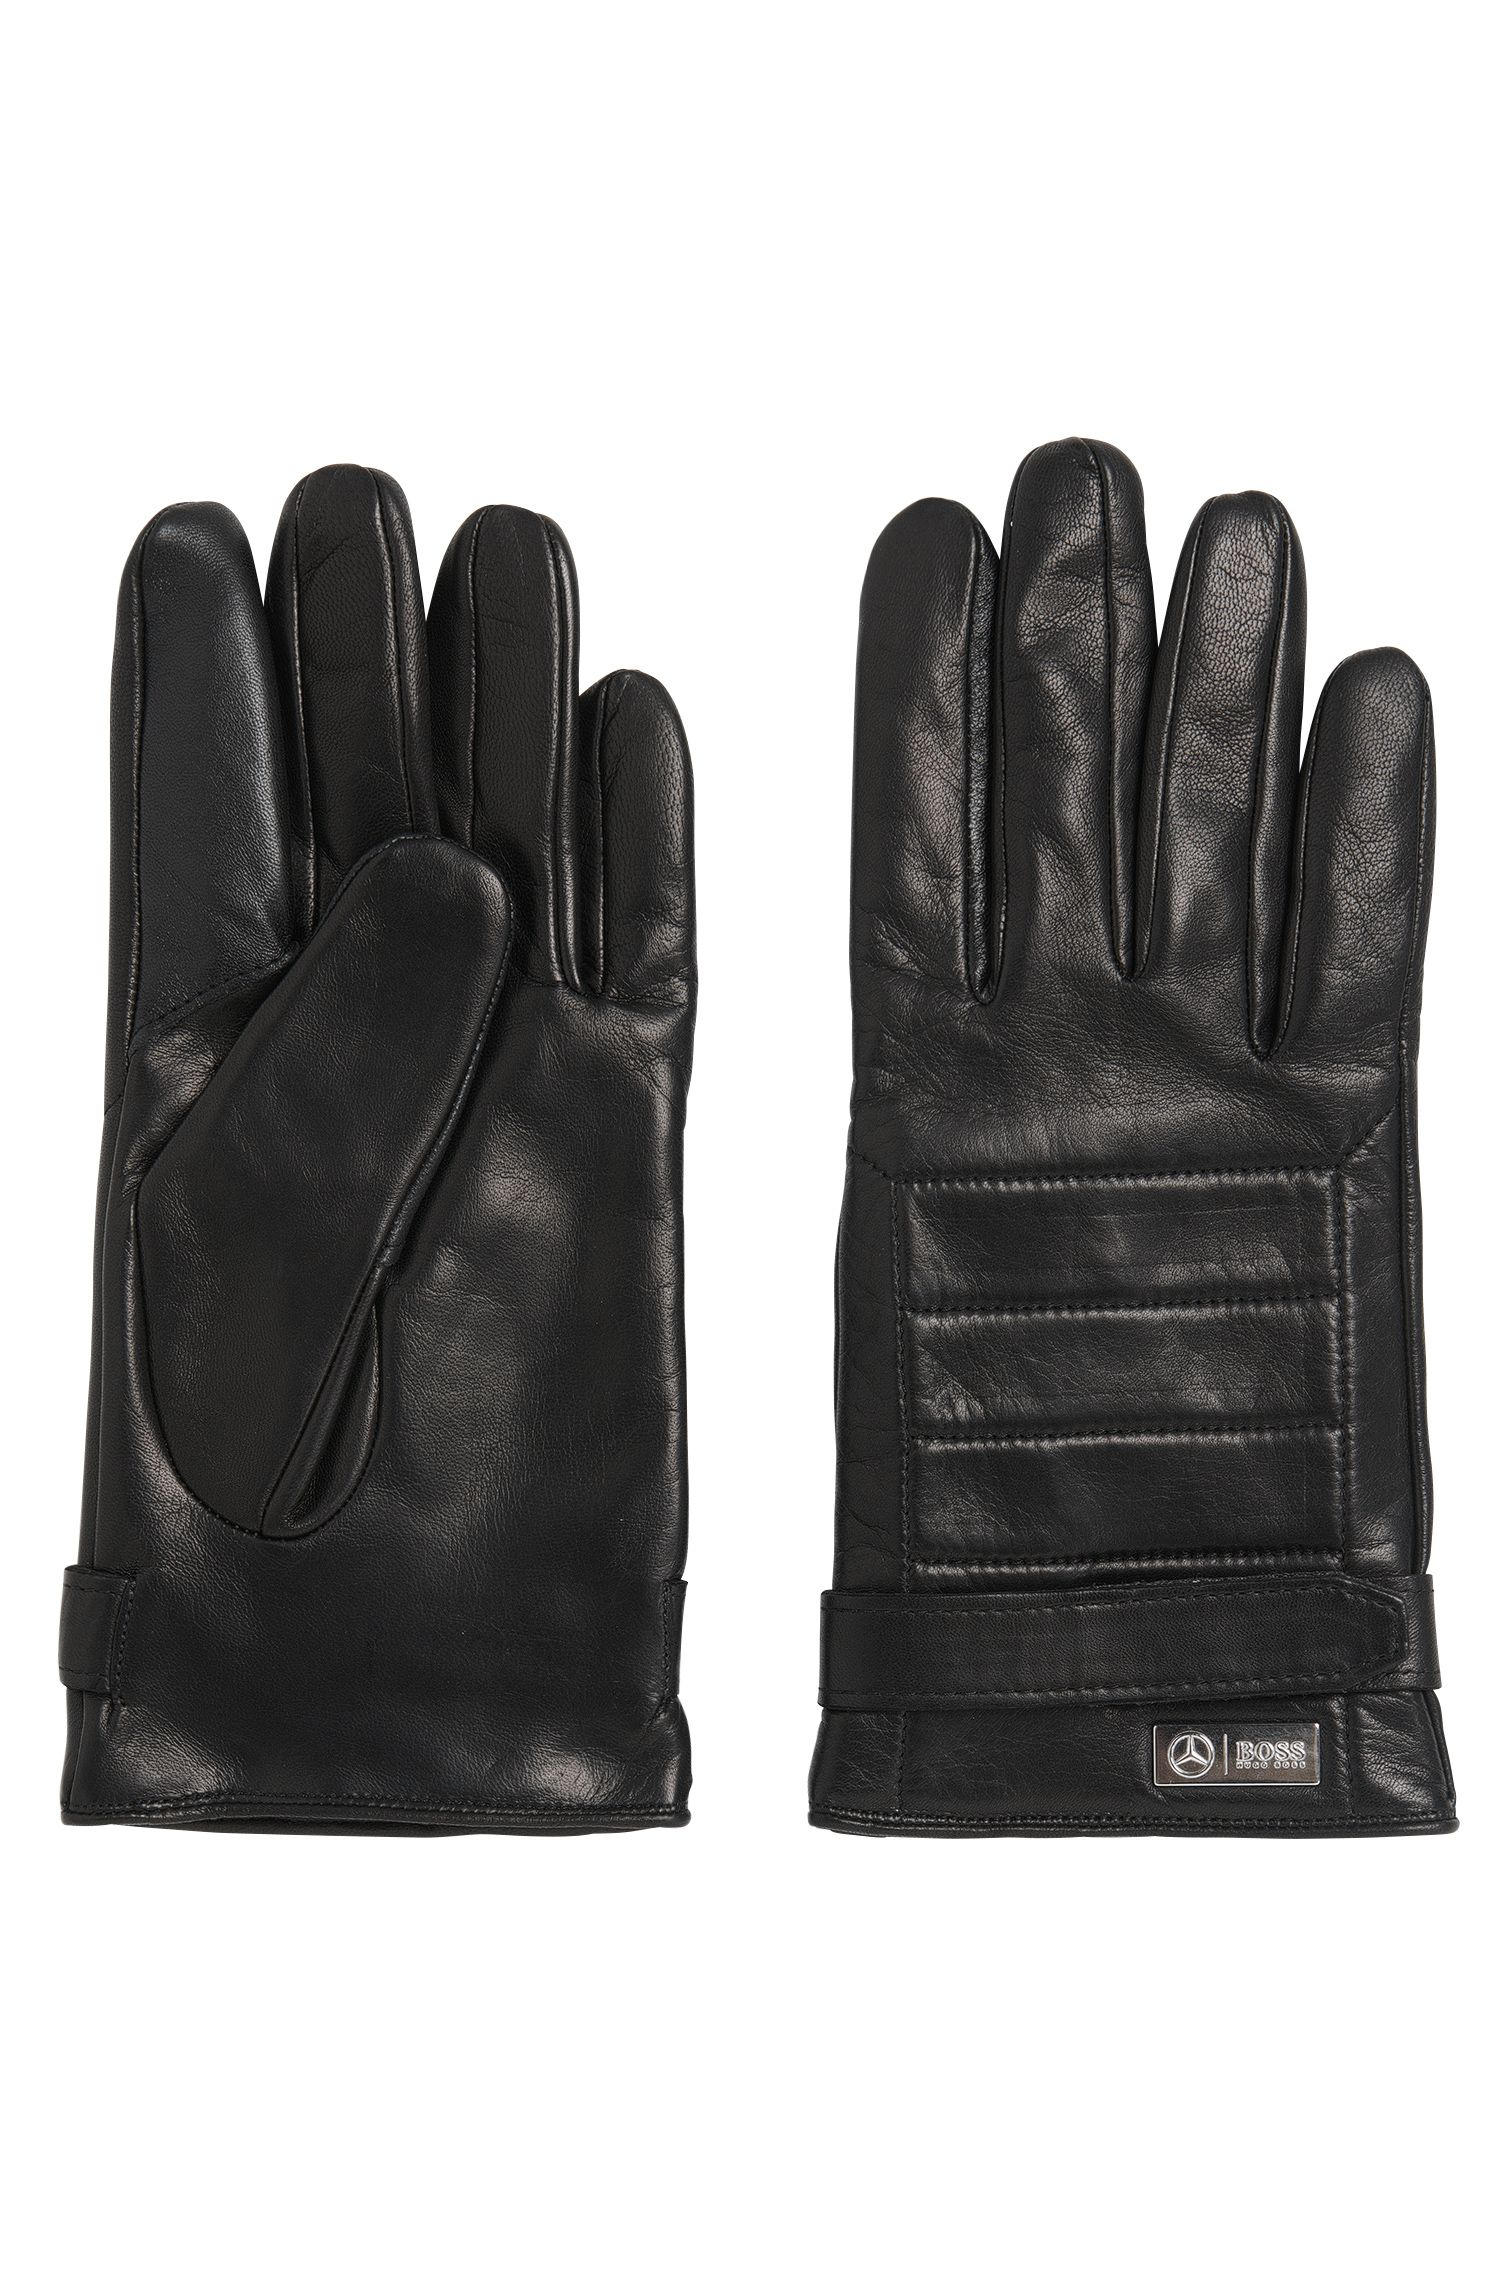 Gants en cuir à patte auto-agrippante : « Kilox2-TT » de la collection Mercedes-Benz